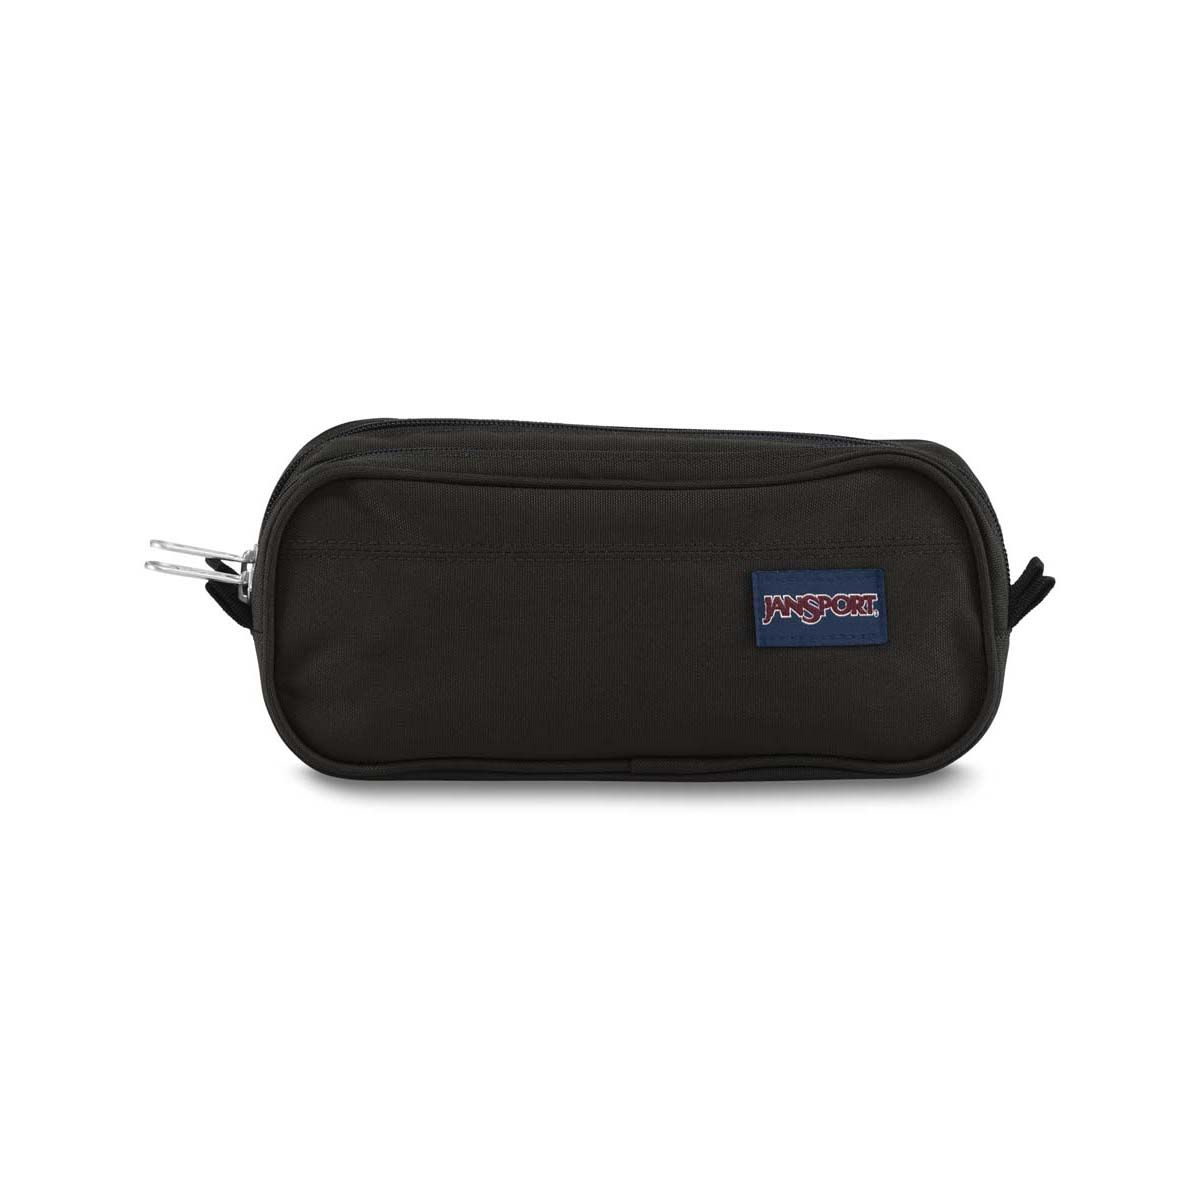 JanSport Large Accessory Pouch in Black